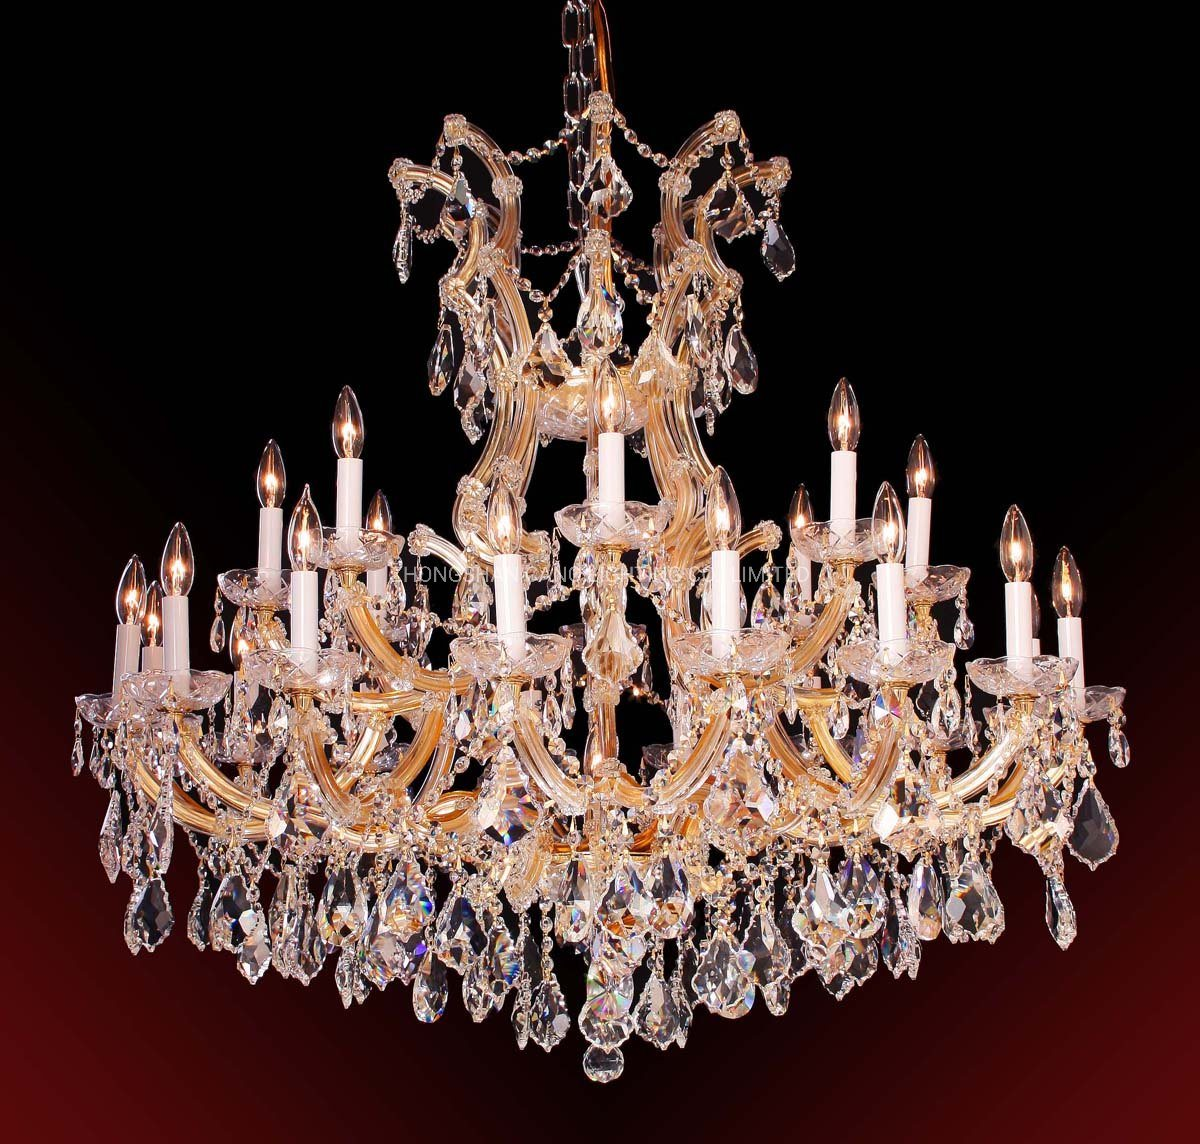 China Zinc Candle Crystal Chandelier